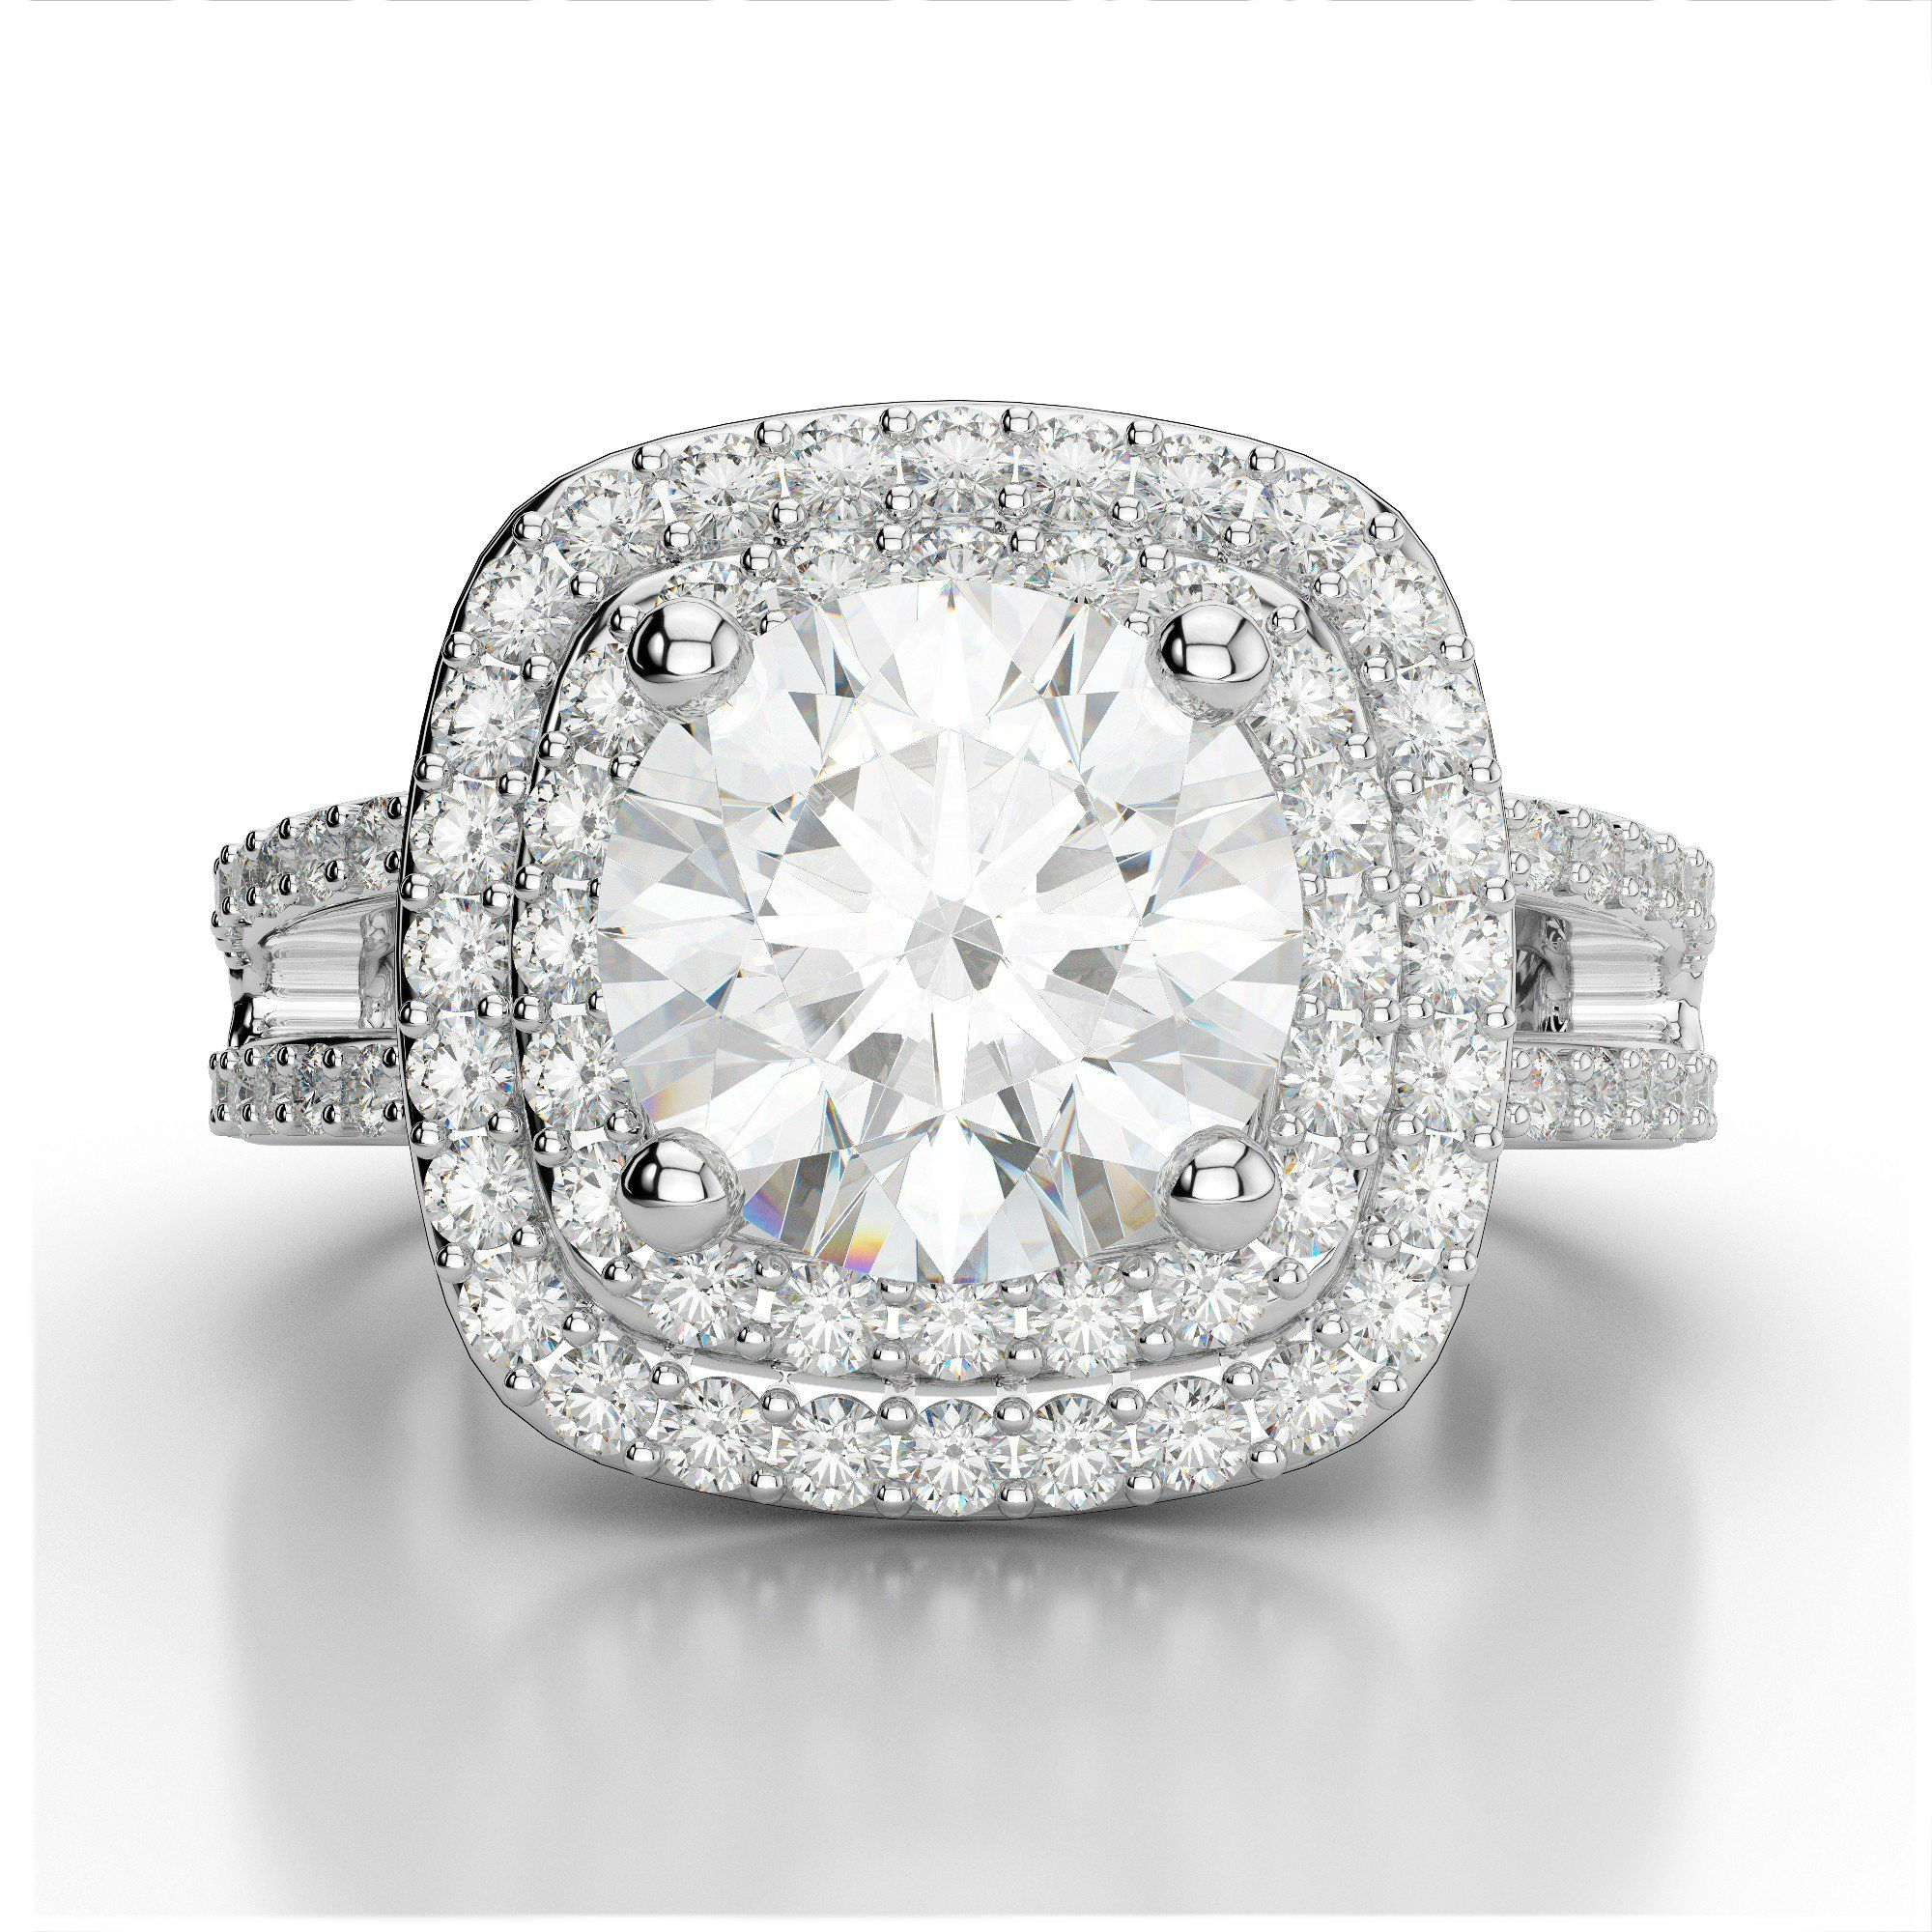 service with highland diamond the wedding rings free complete setting it services conflict